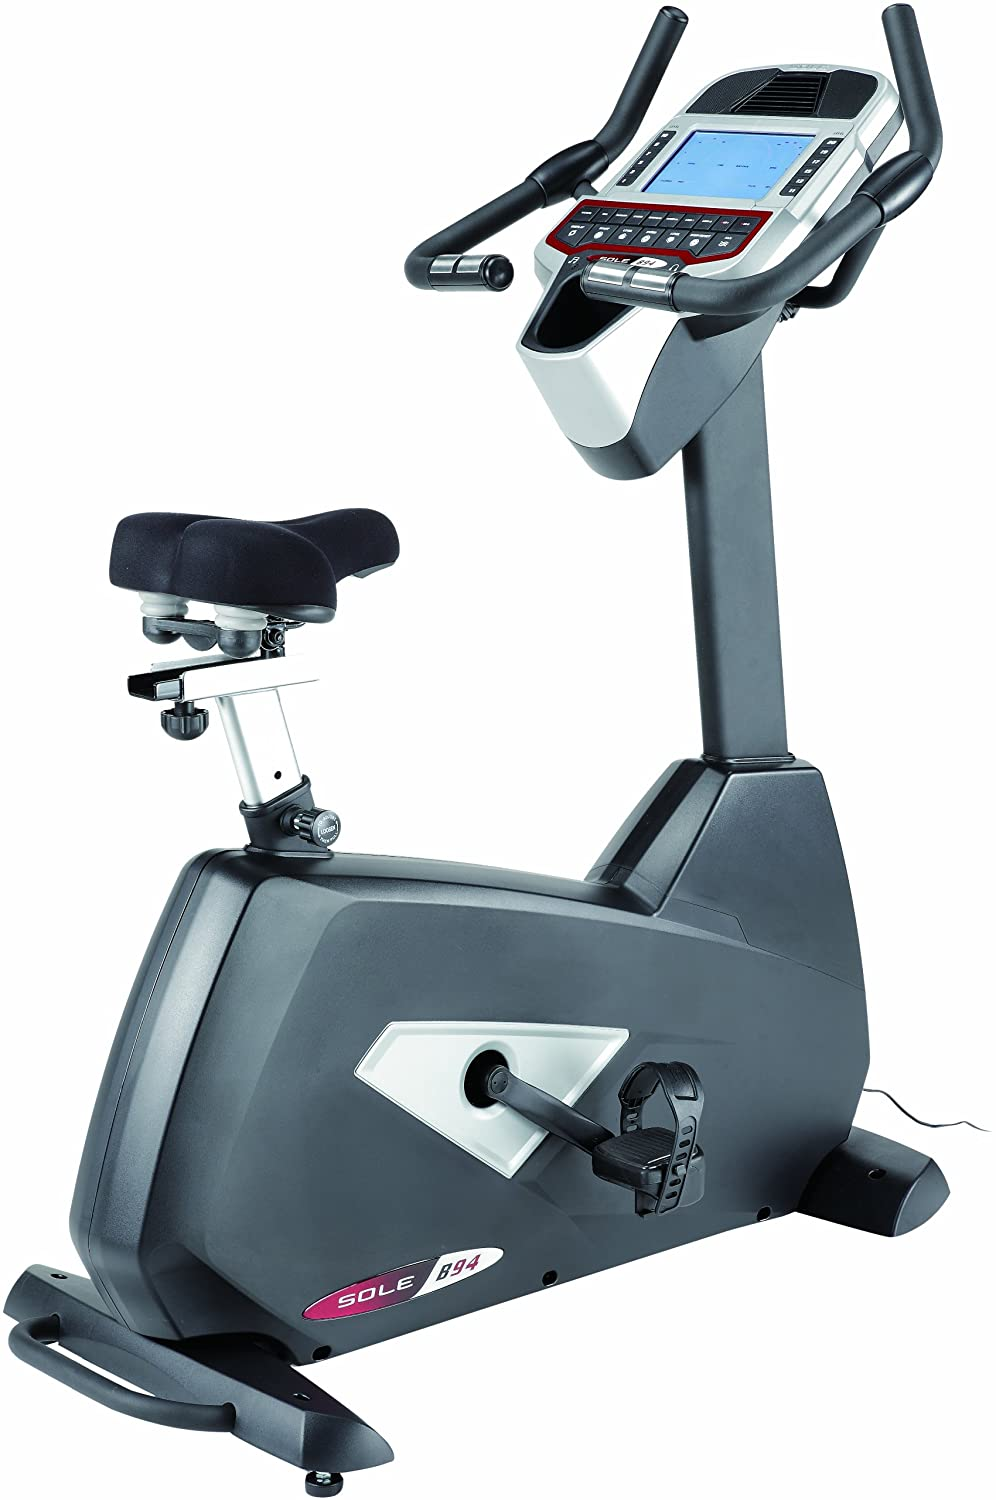 Upright Exercise Bikes For Heavy People Over 300lbs For Big And